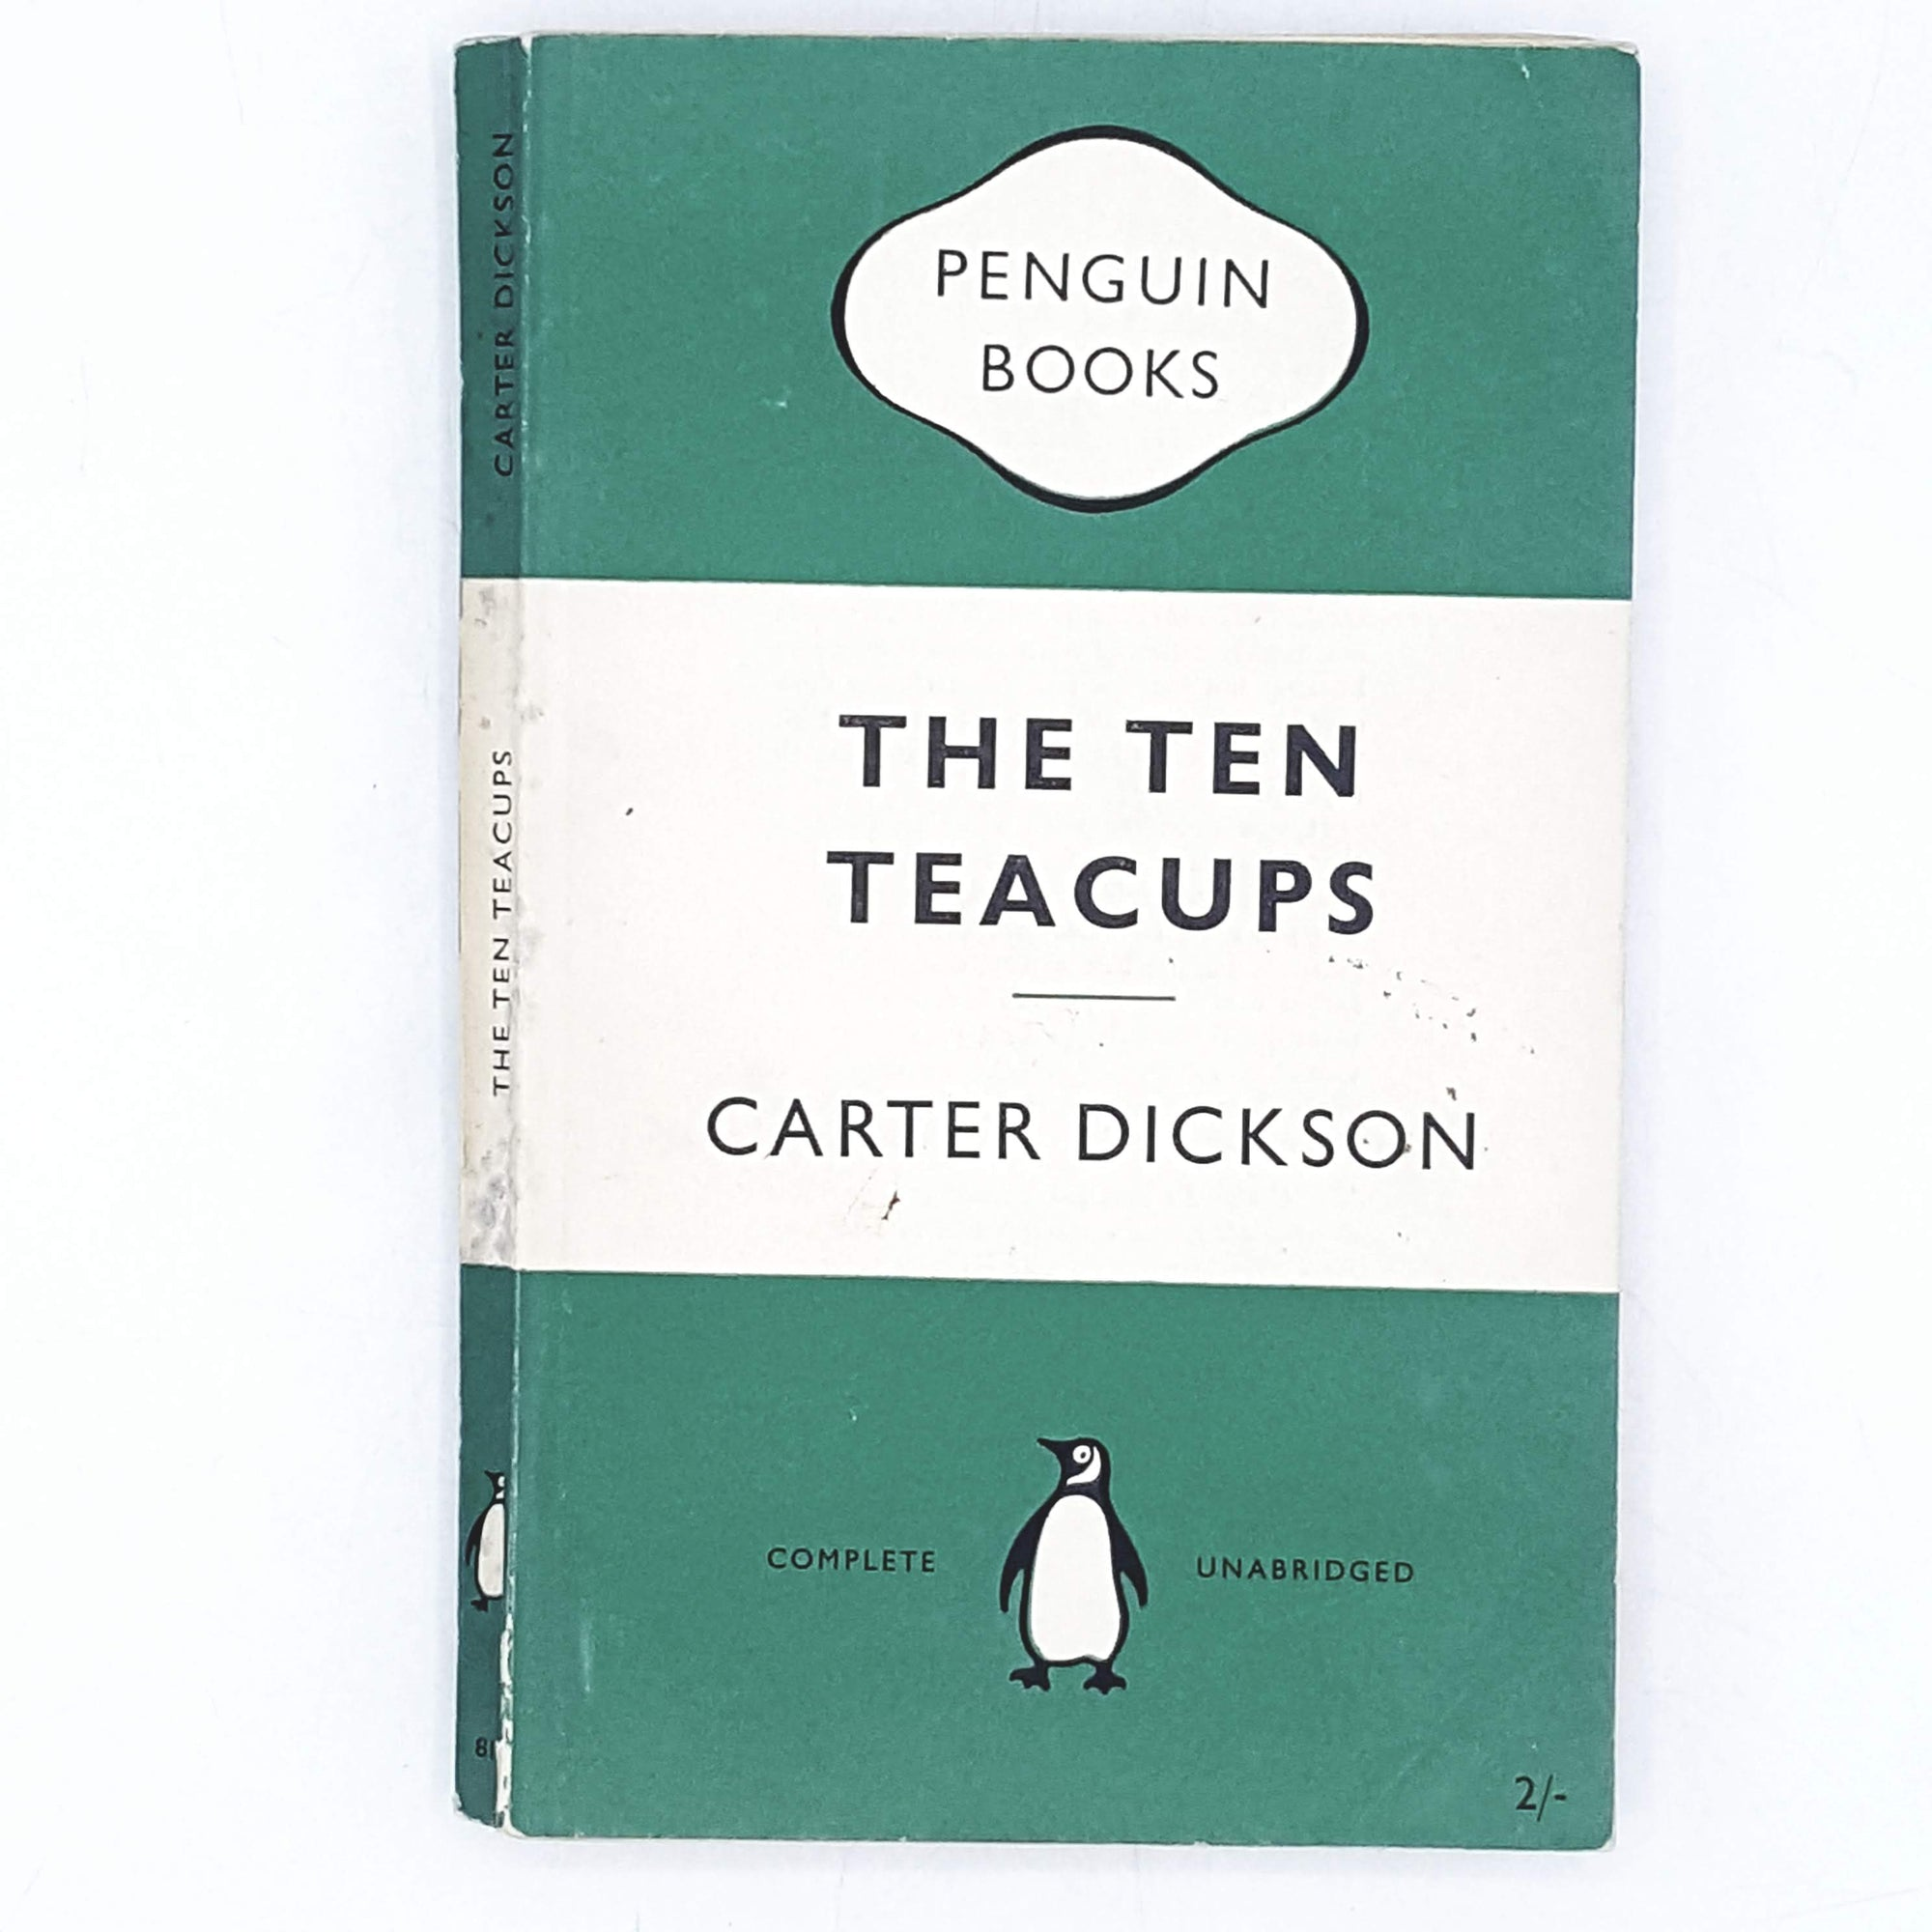 Vintage Penguin The Ten Teacups by Carter Dickson 1955